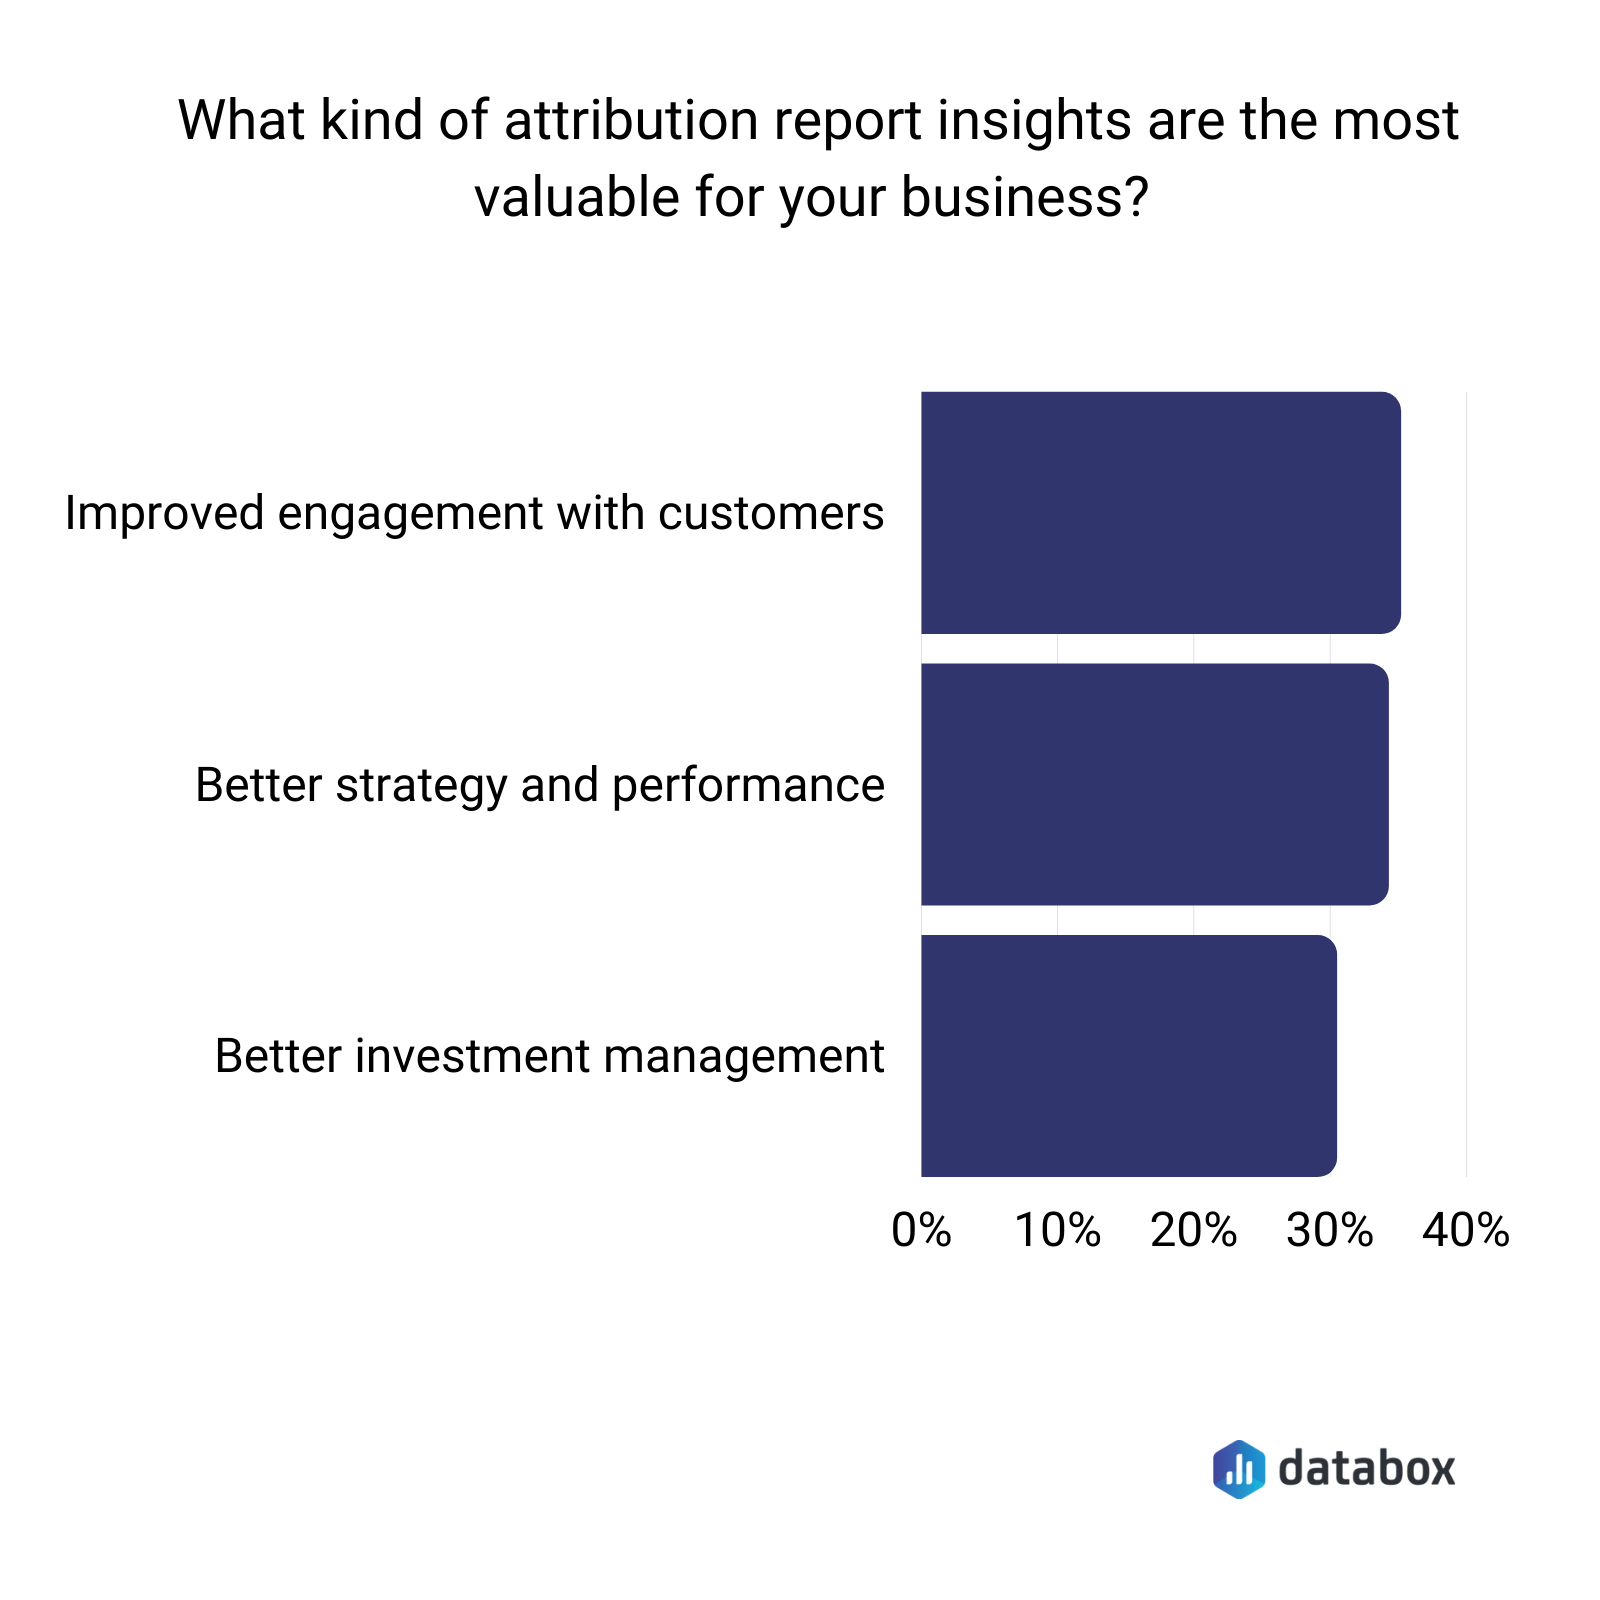 Most valuable attribution report insights